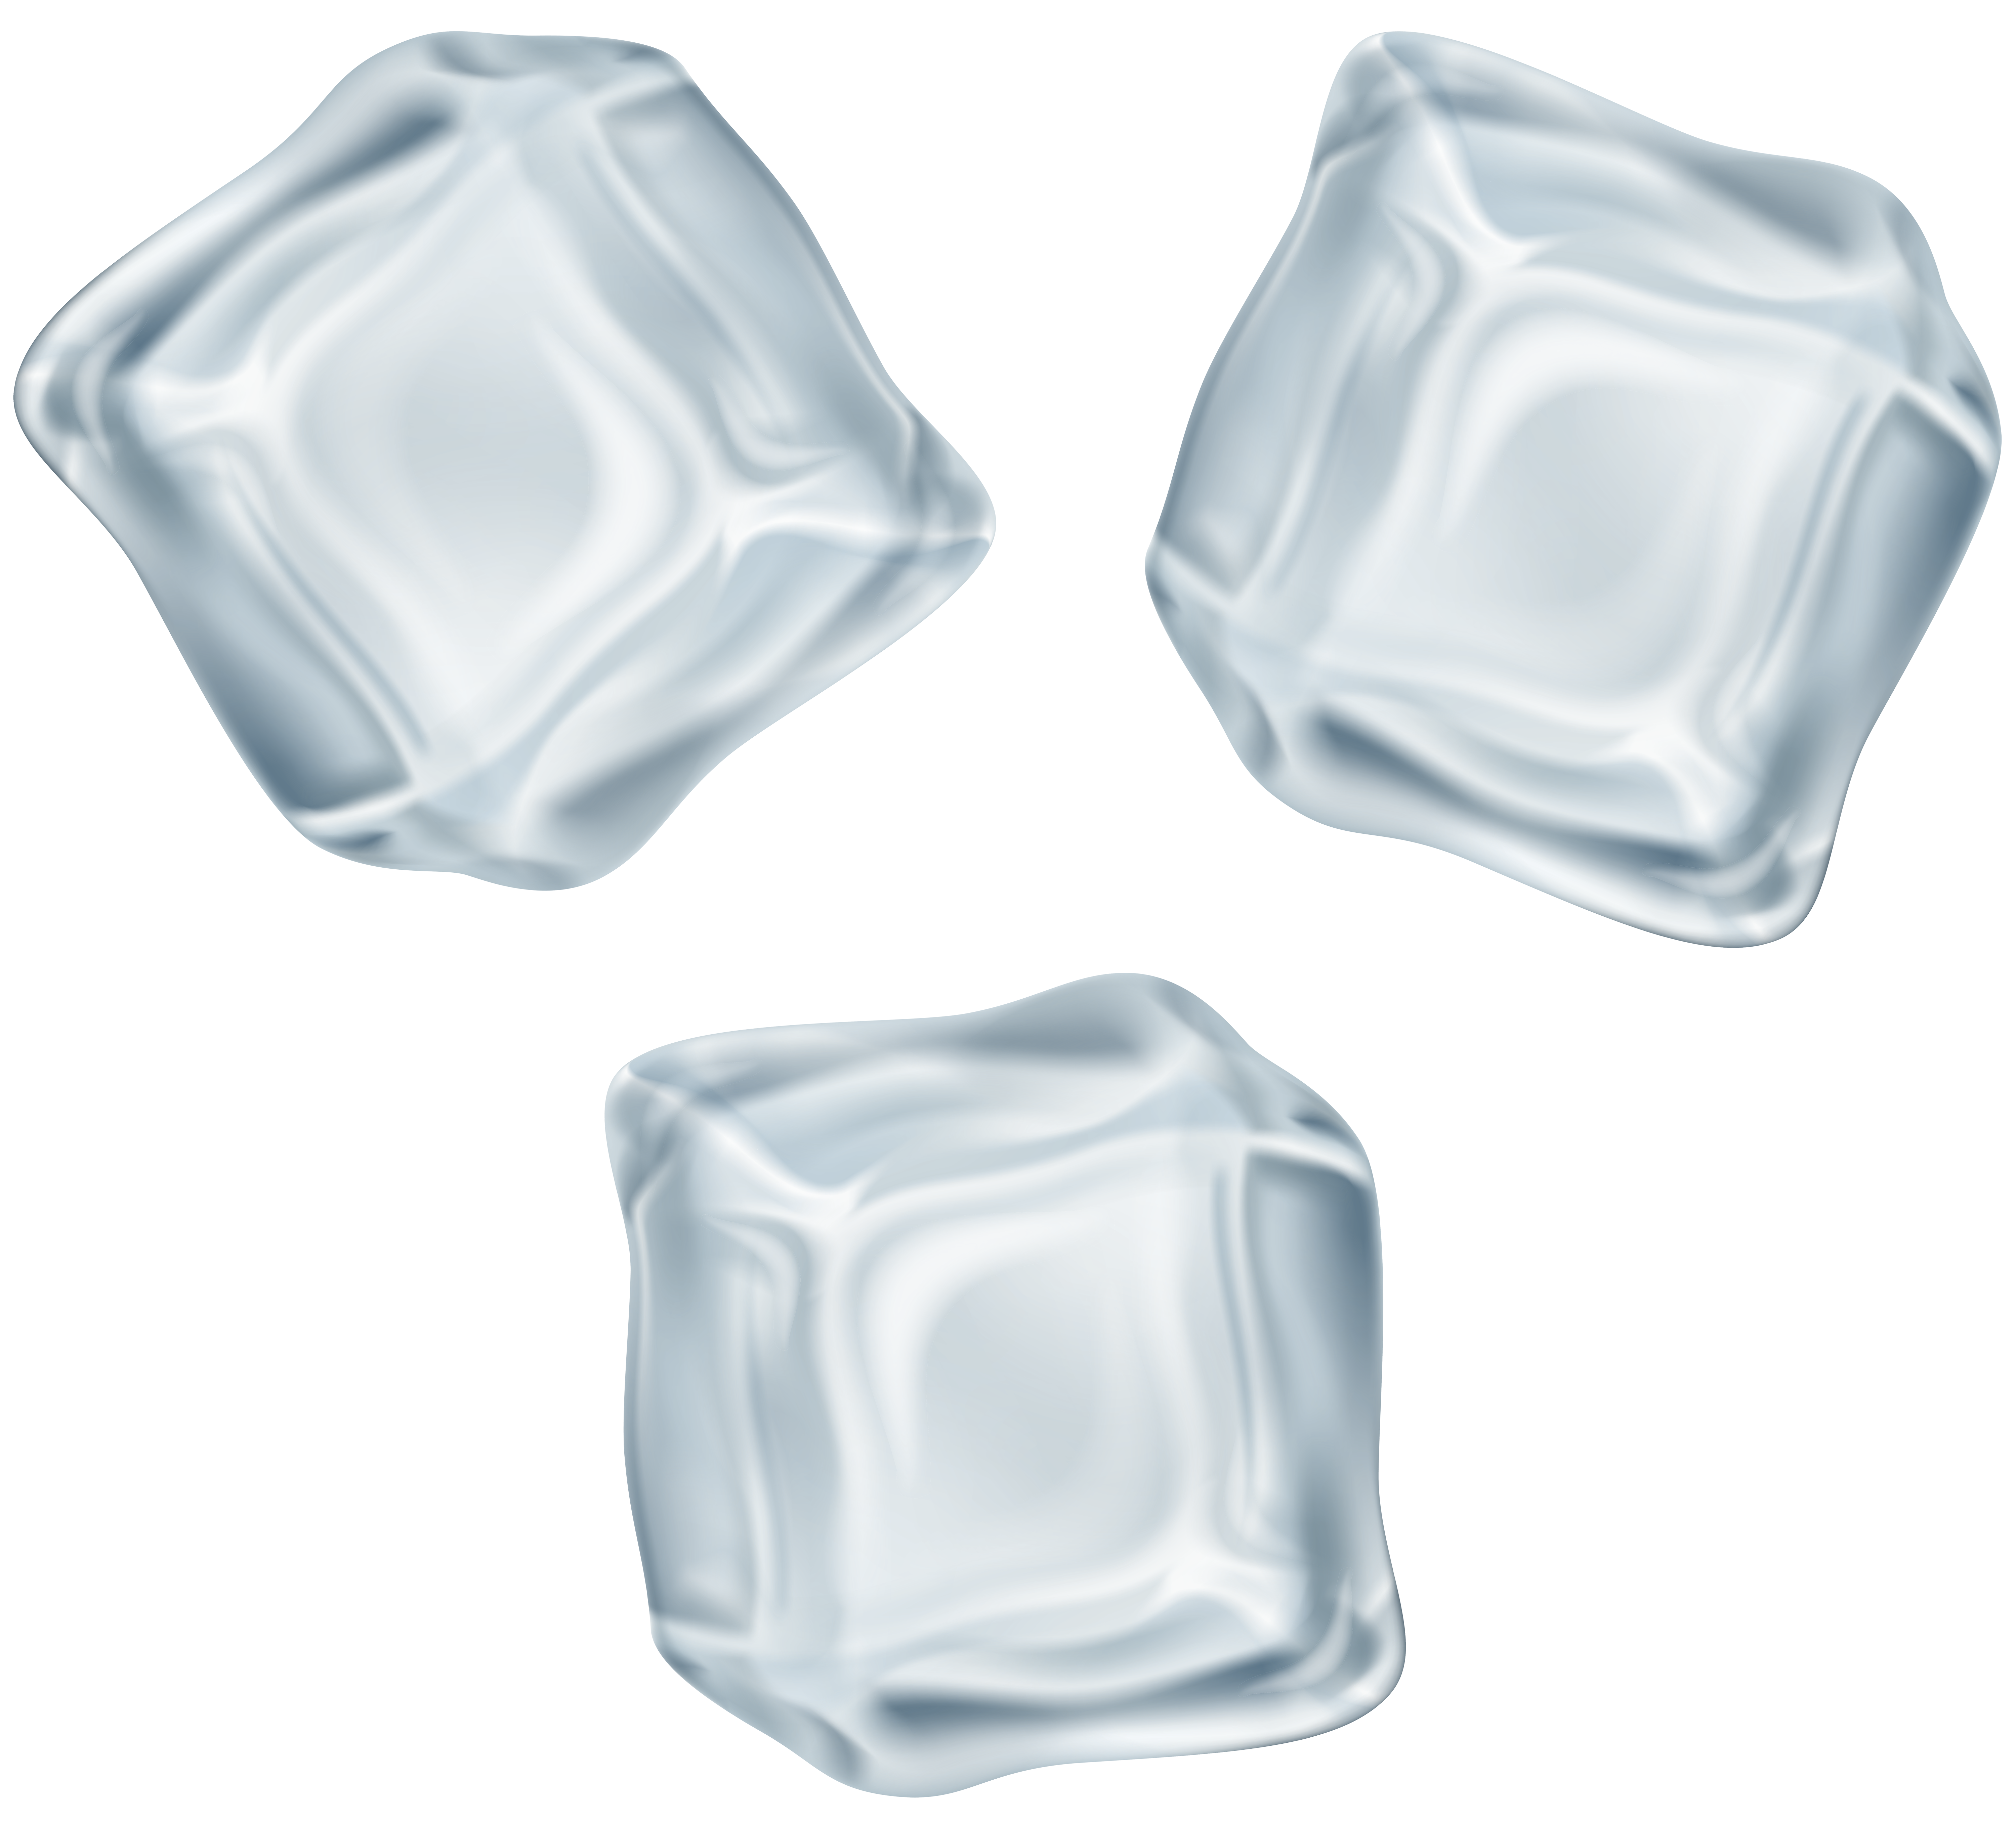 Square clipart large. Ice cubes png clip